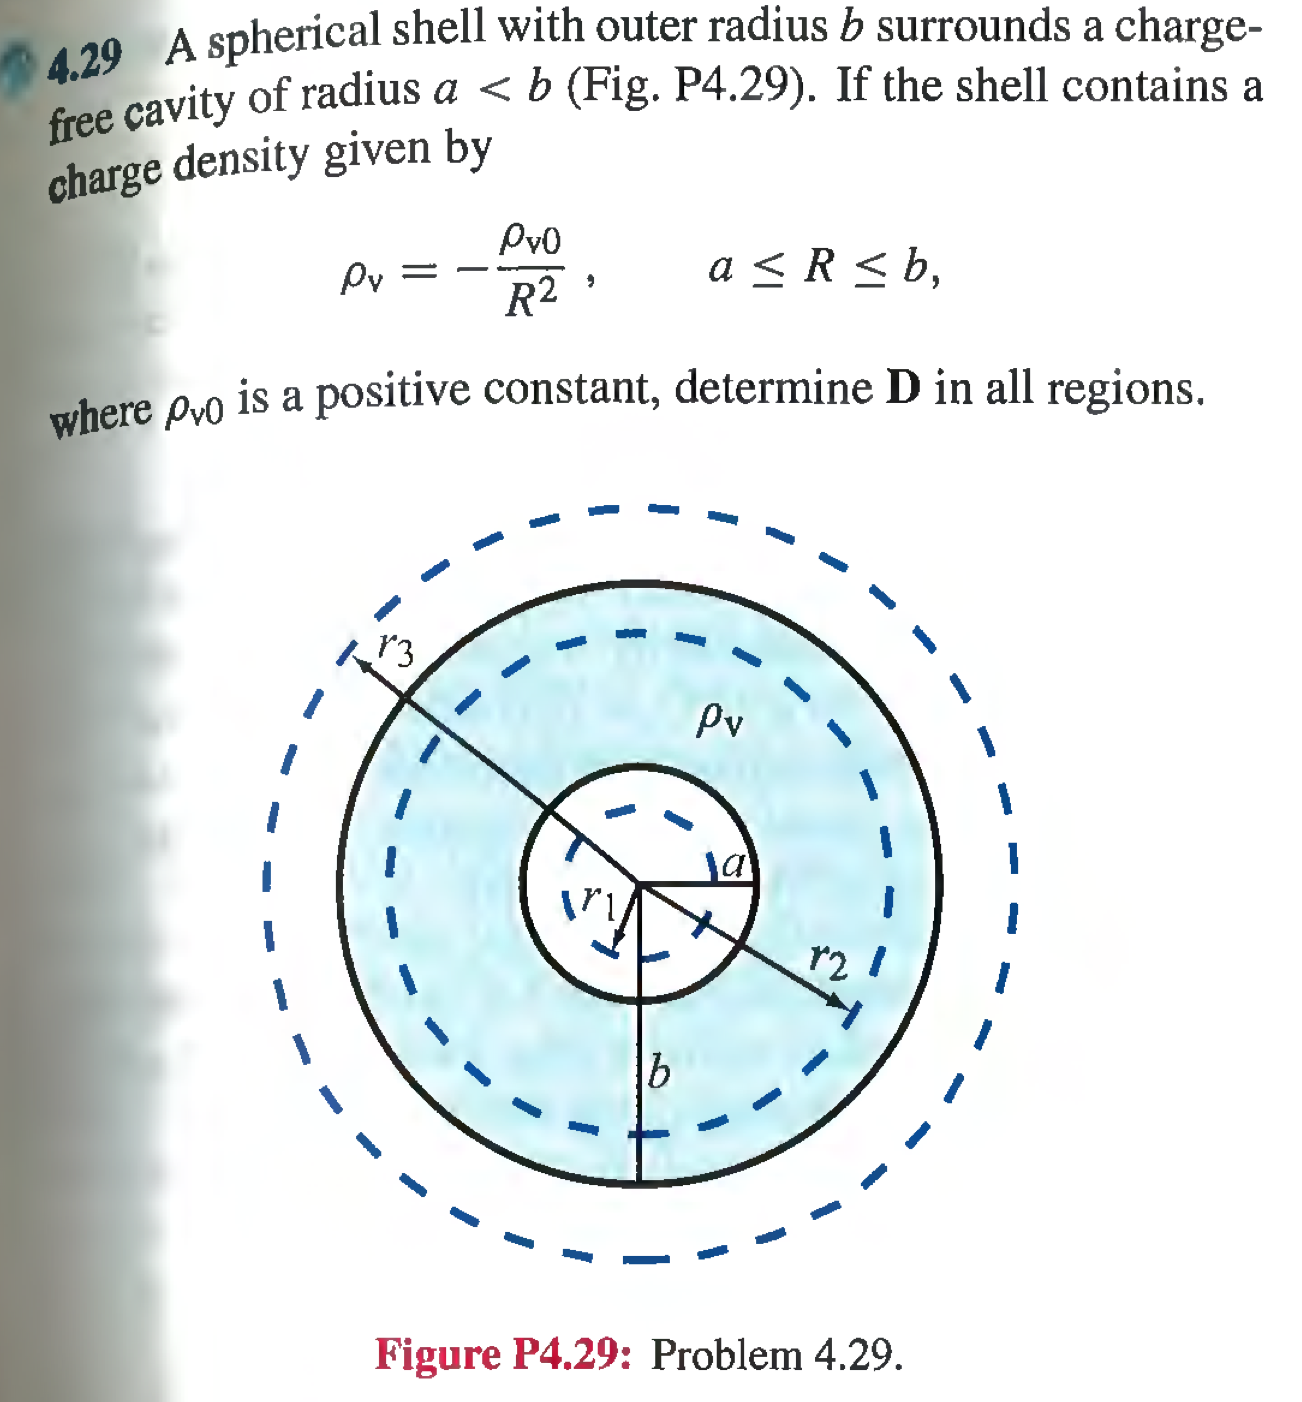 A spherical shell with outer radius b surrounds a